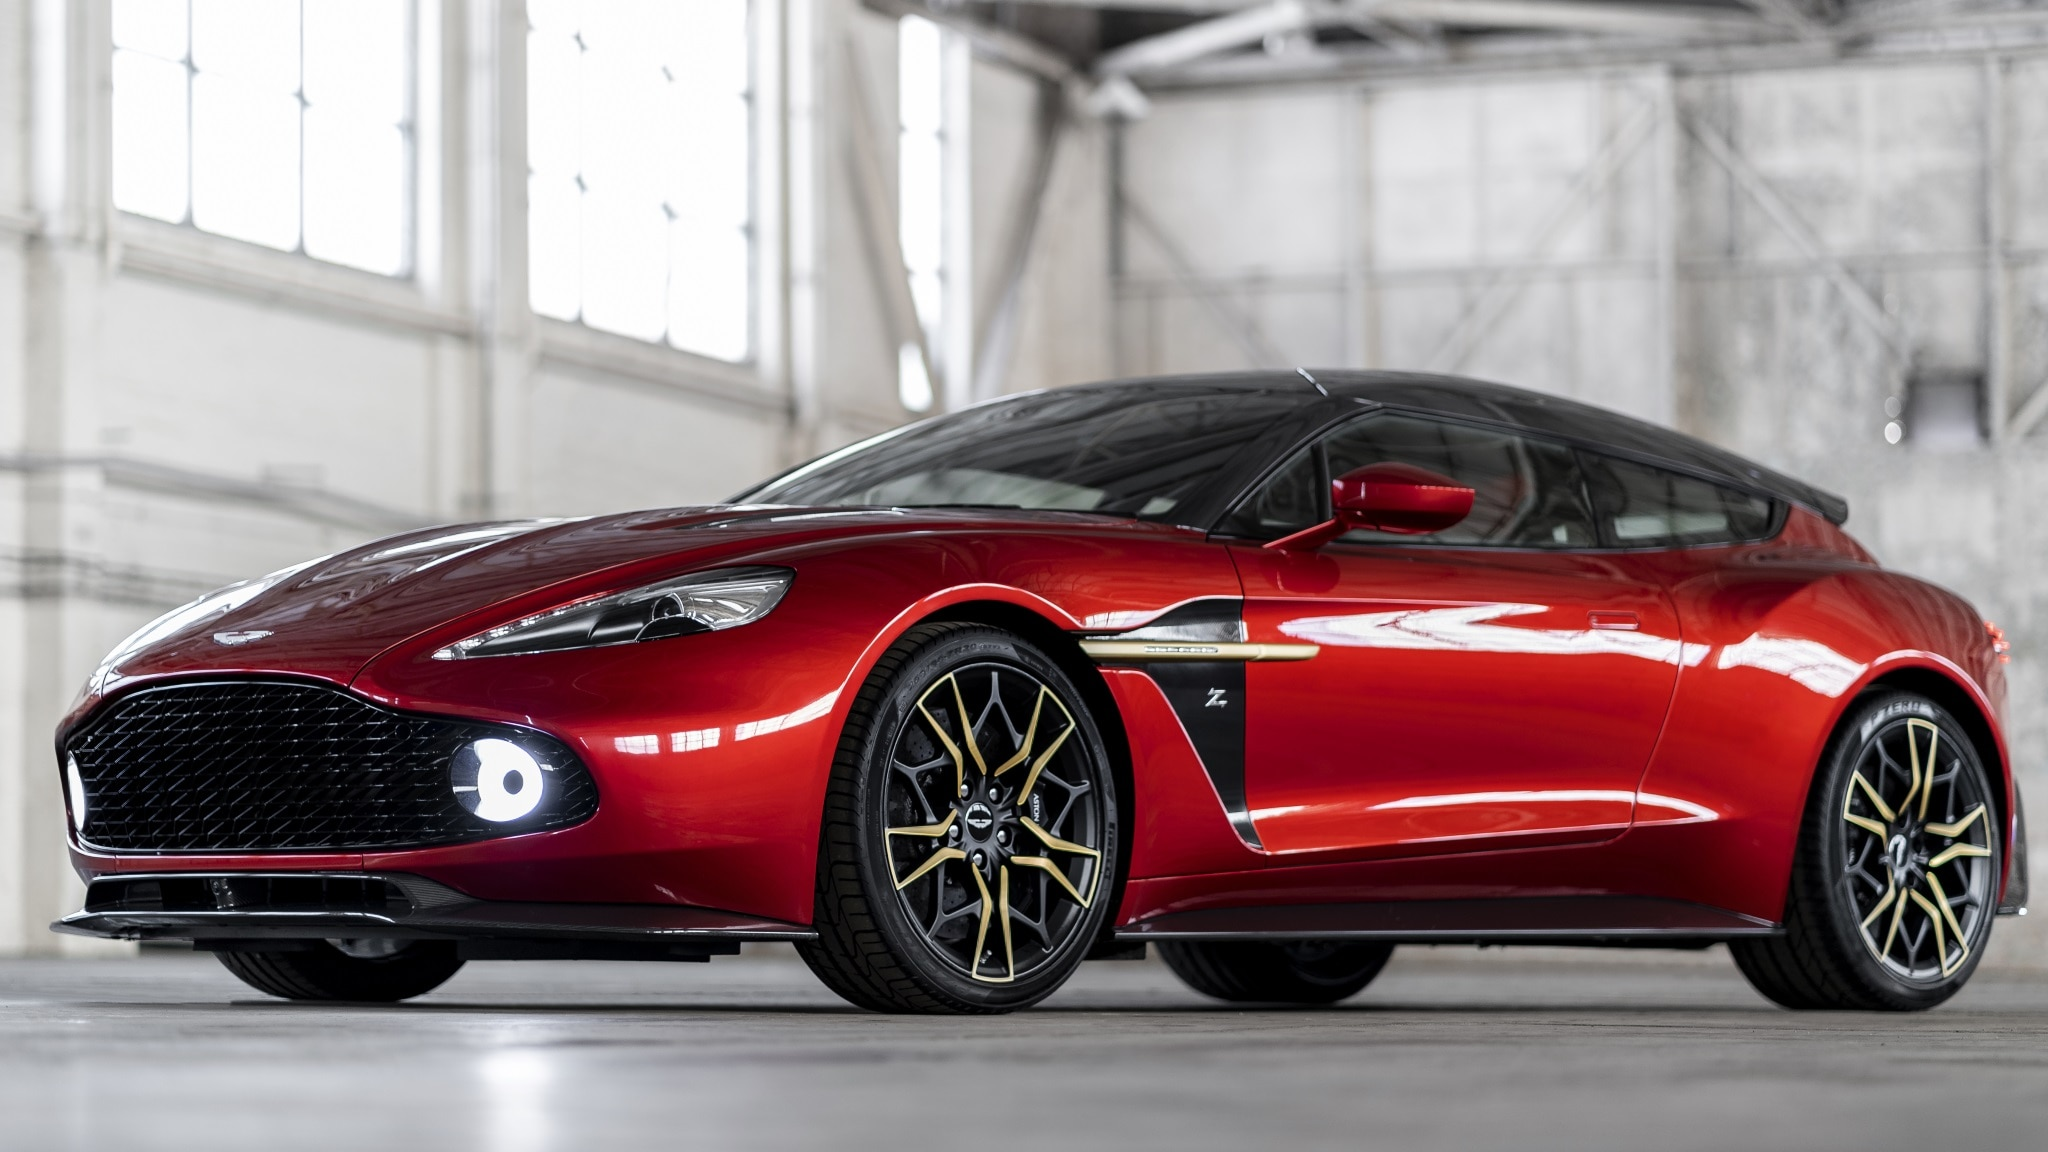 Which Of These Aston Martins Would You Most Want To Own